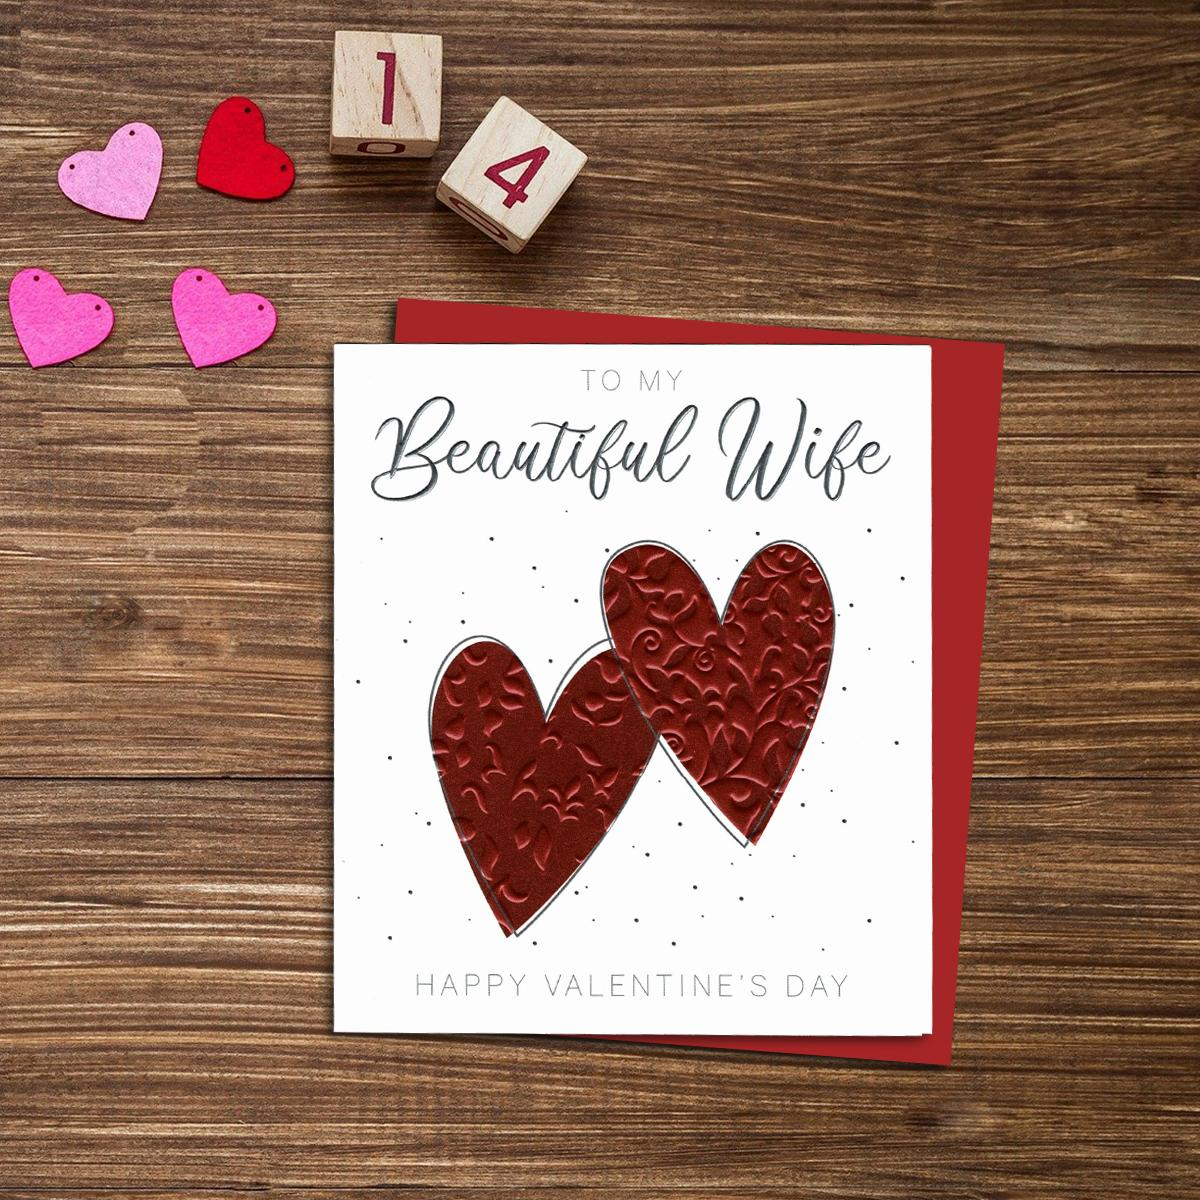 Beautiful Wife Valentines Day Card Alongside Its Red Envelope